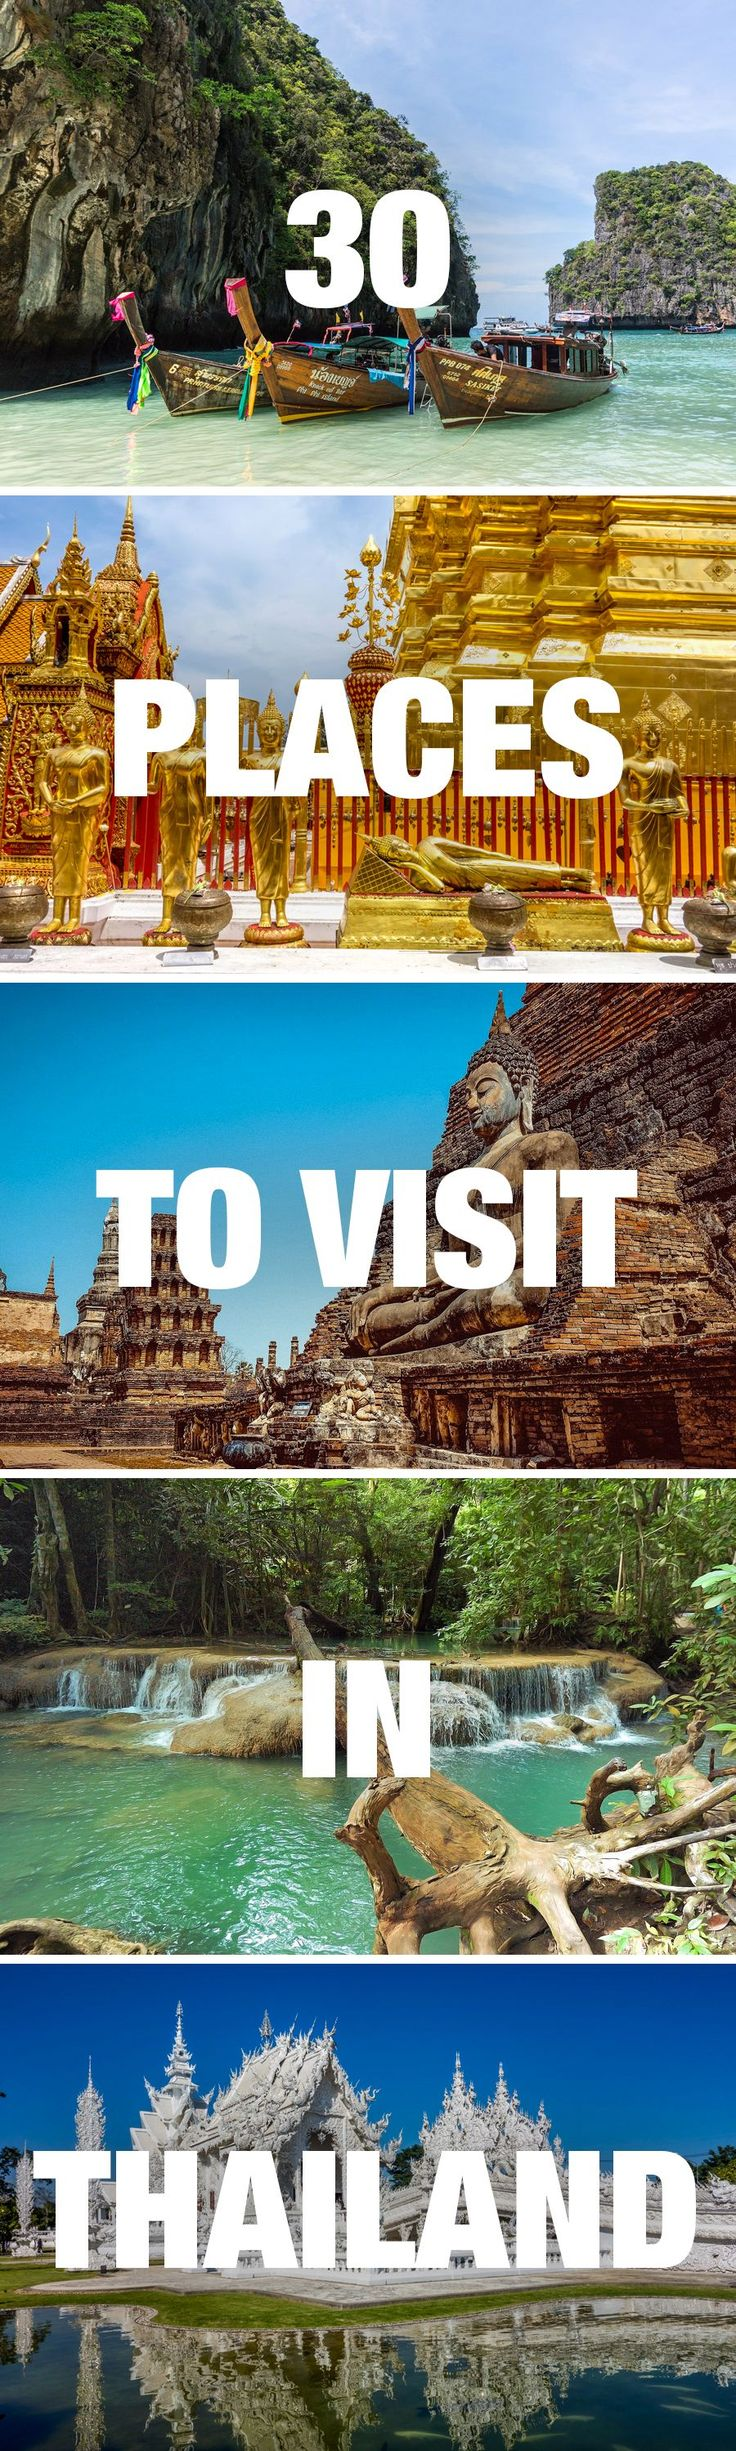 Travel guide to Thailand with all the best places to visit, from Bangkok to Chaing Mai to Koh Phi Phi.